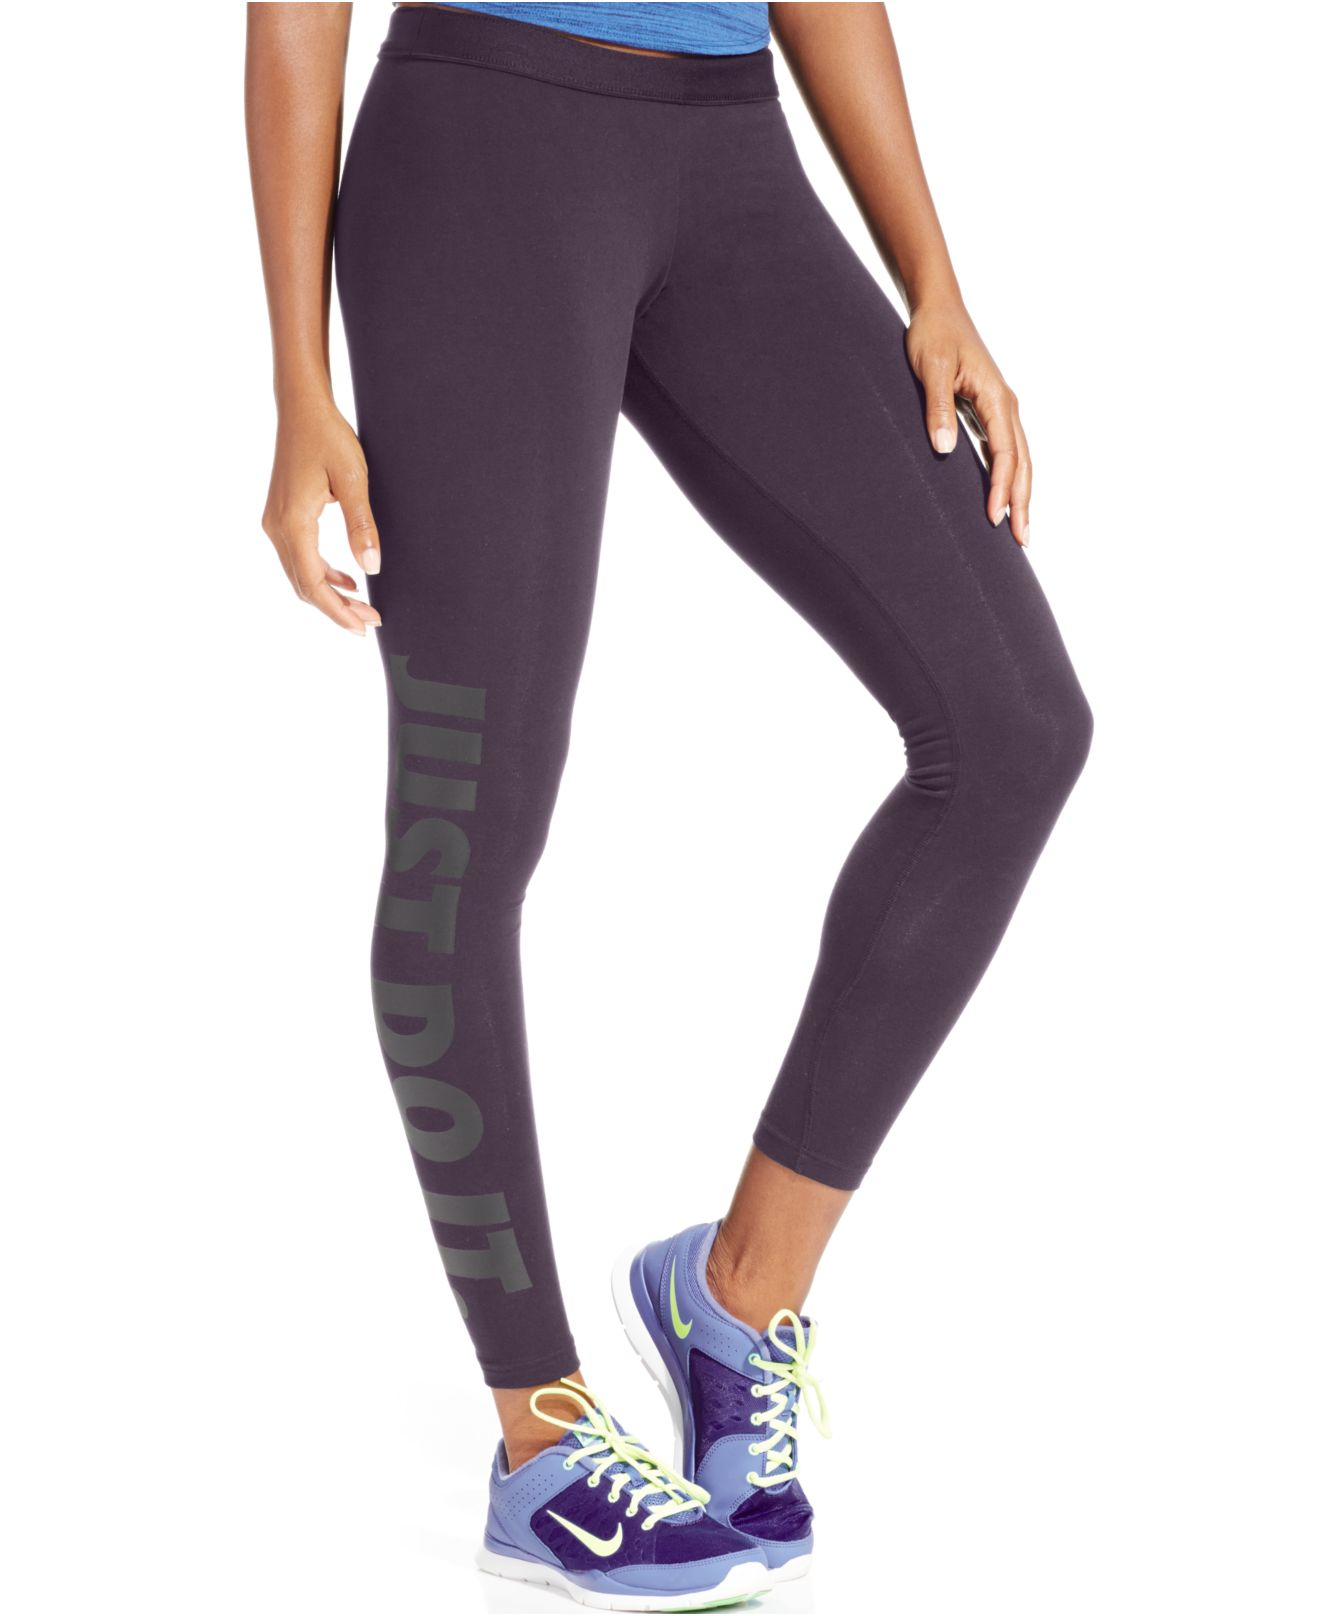 nike leg a see dri fit just do it leggings in purple lyst. Black Bedroom Furniture Sets. Home Design Ideas